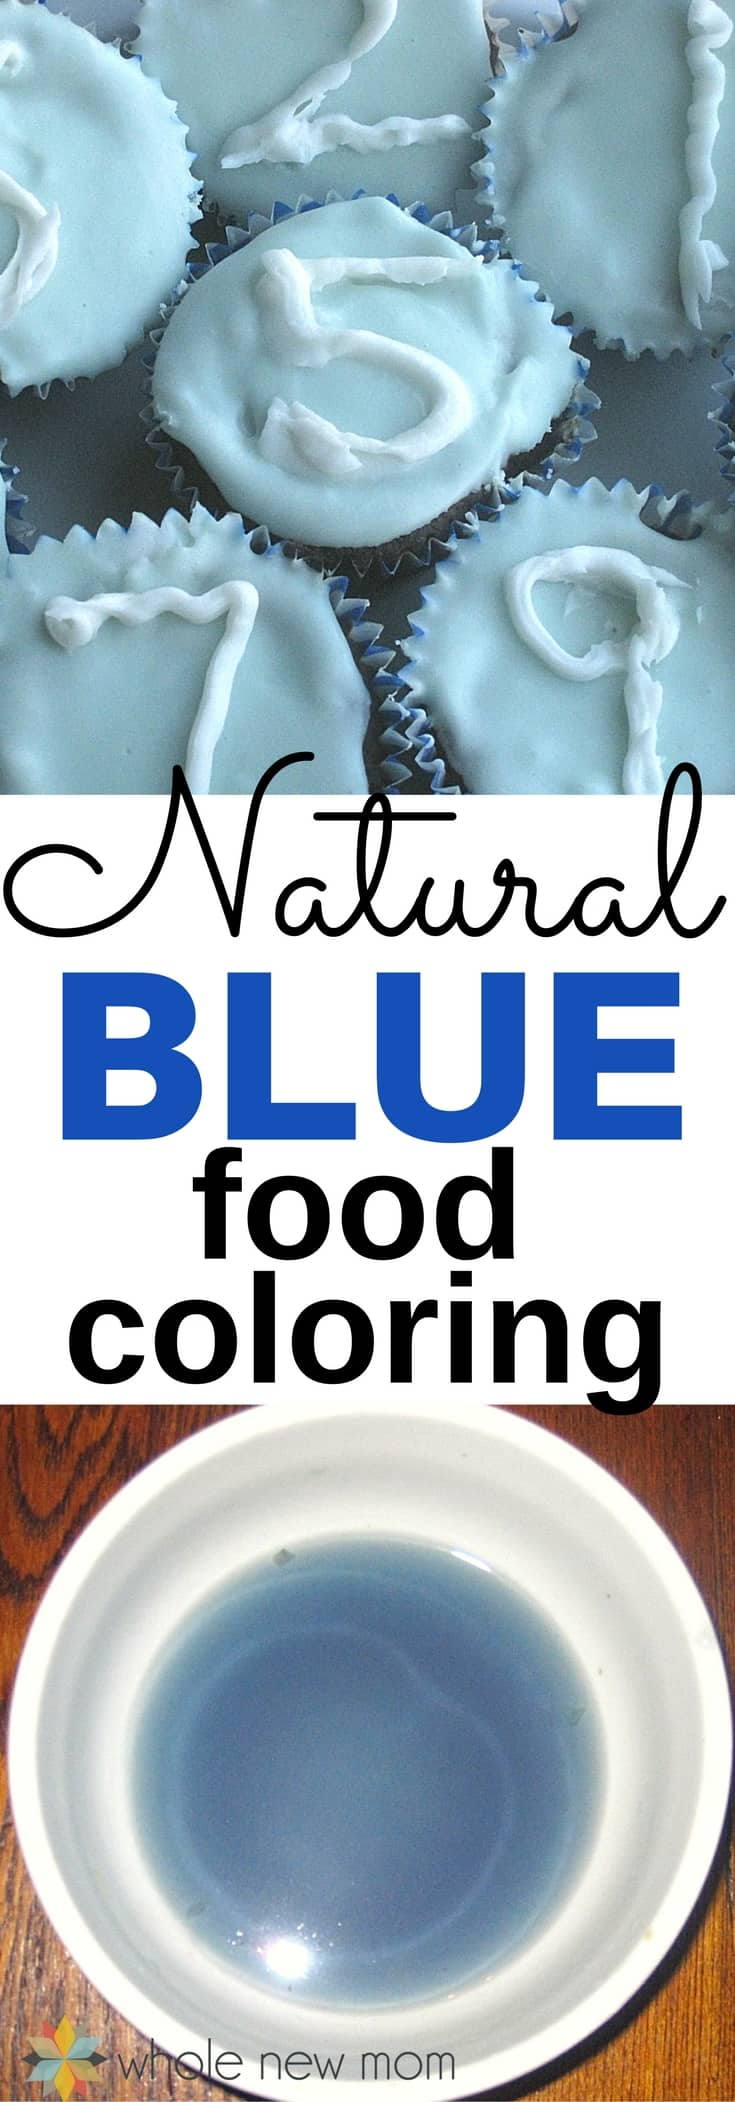 Natural Food Coloring | Natural Blue Food Coloring